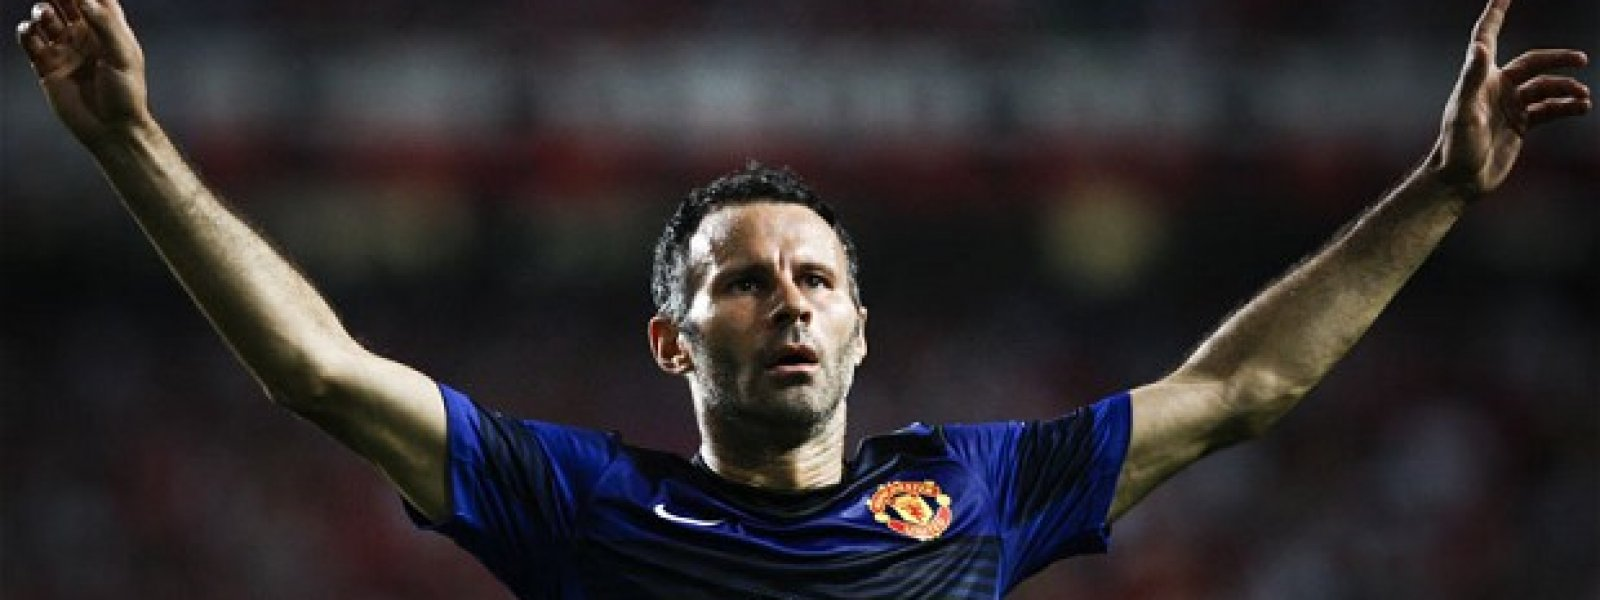 Yoga can help you stay forever young like Ryan Giggs